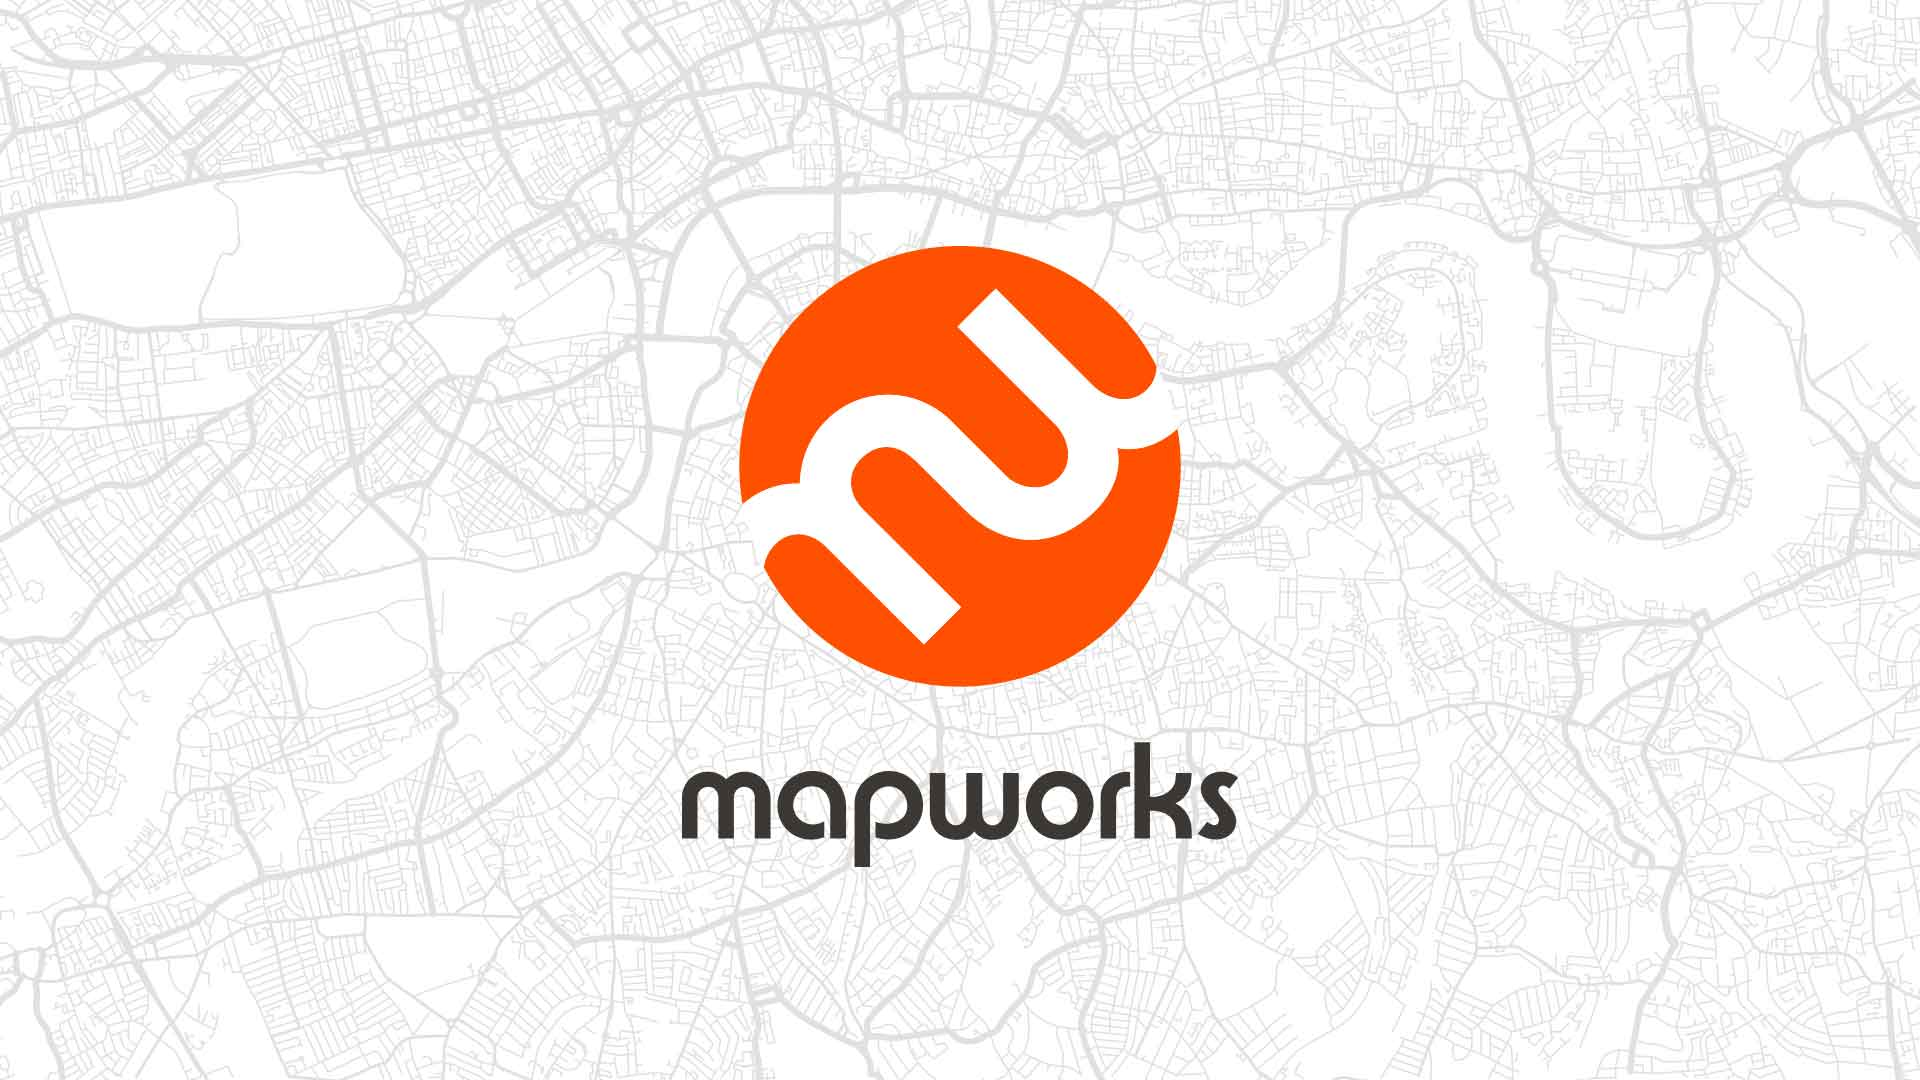 Mapworks goes live to the public